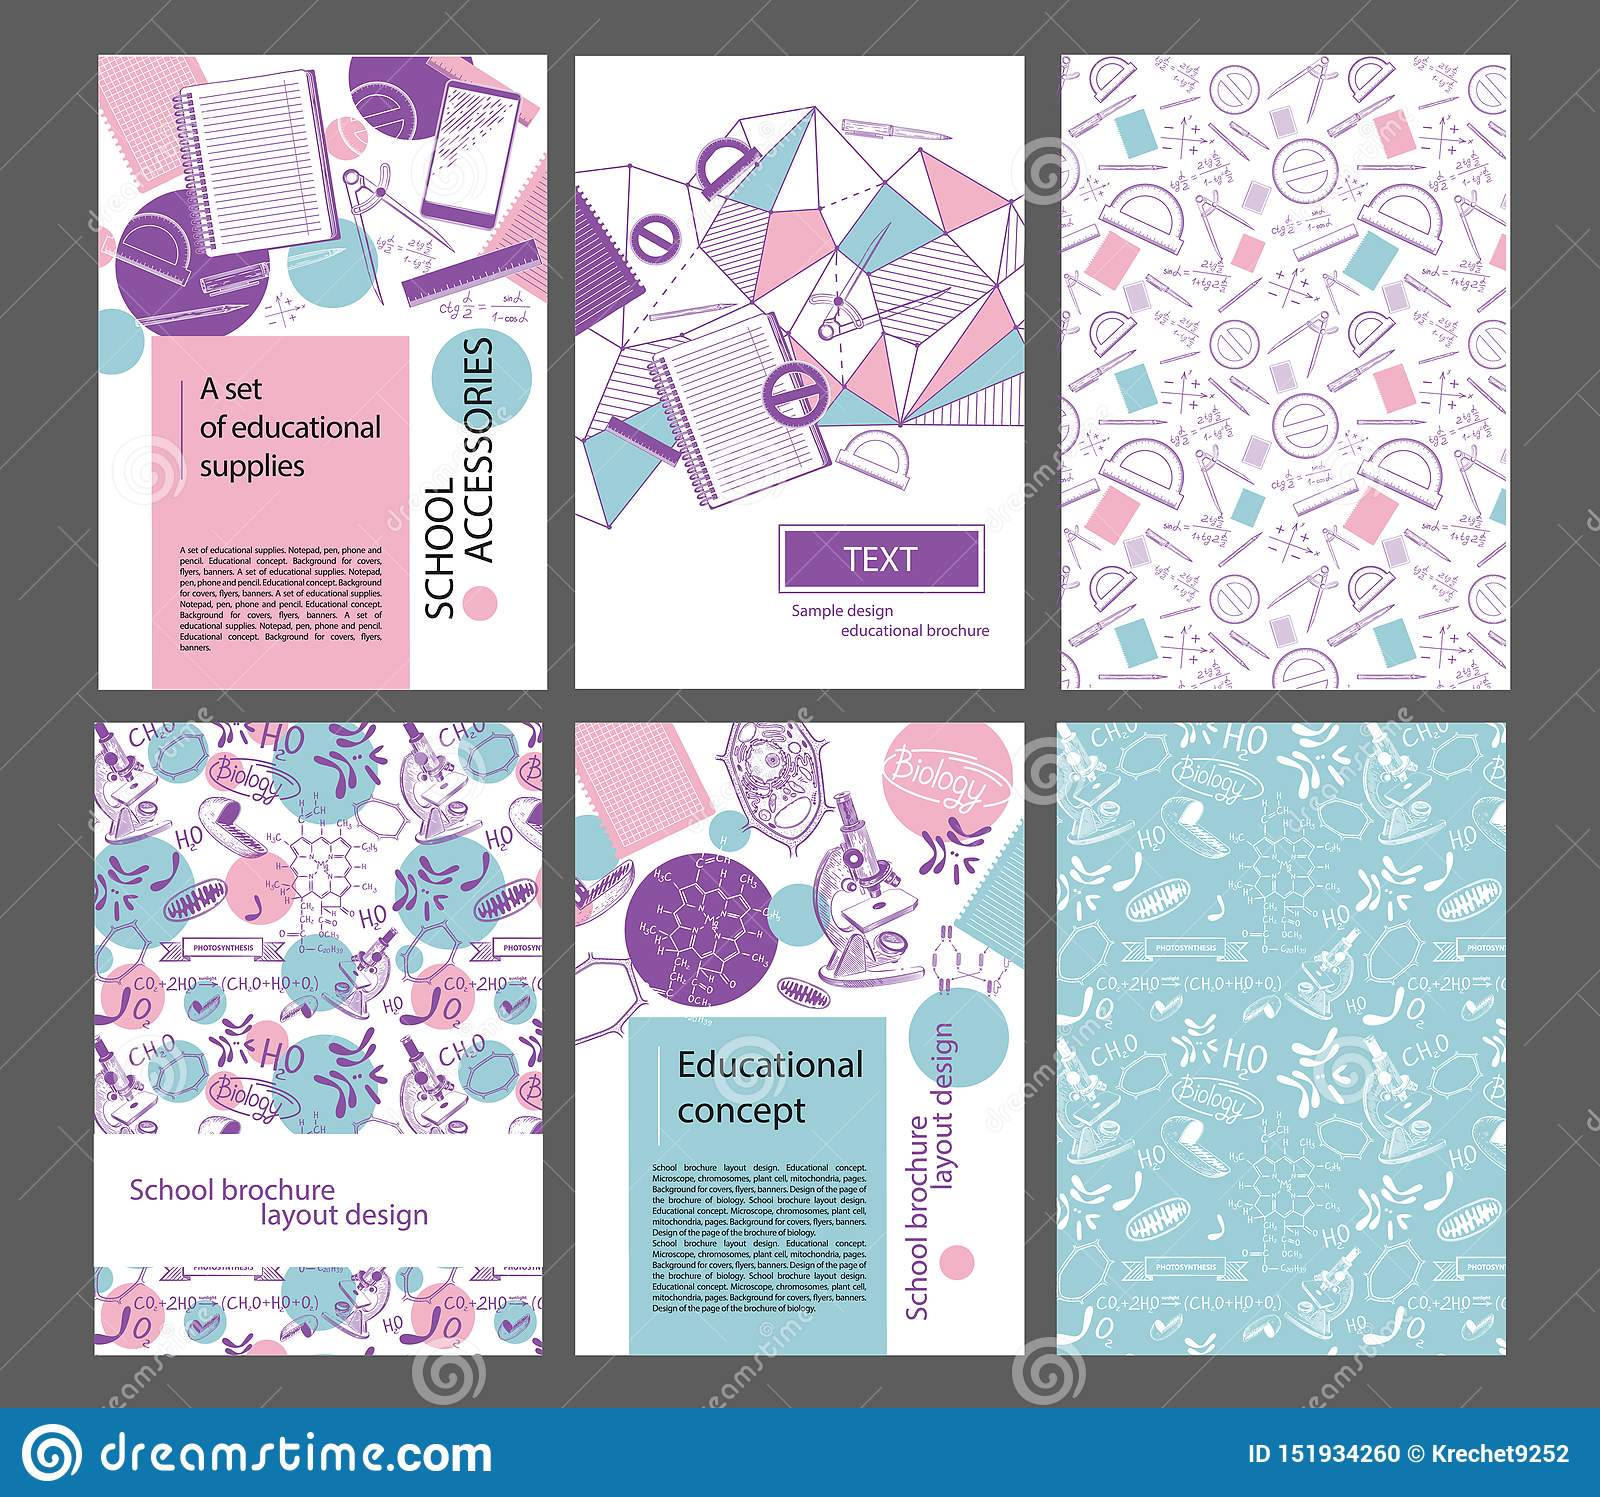 Design layout of the school brochure. Pages, protractor, pen, trigonometric functions microscopes, mitochondria. Set of